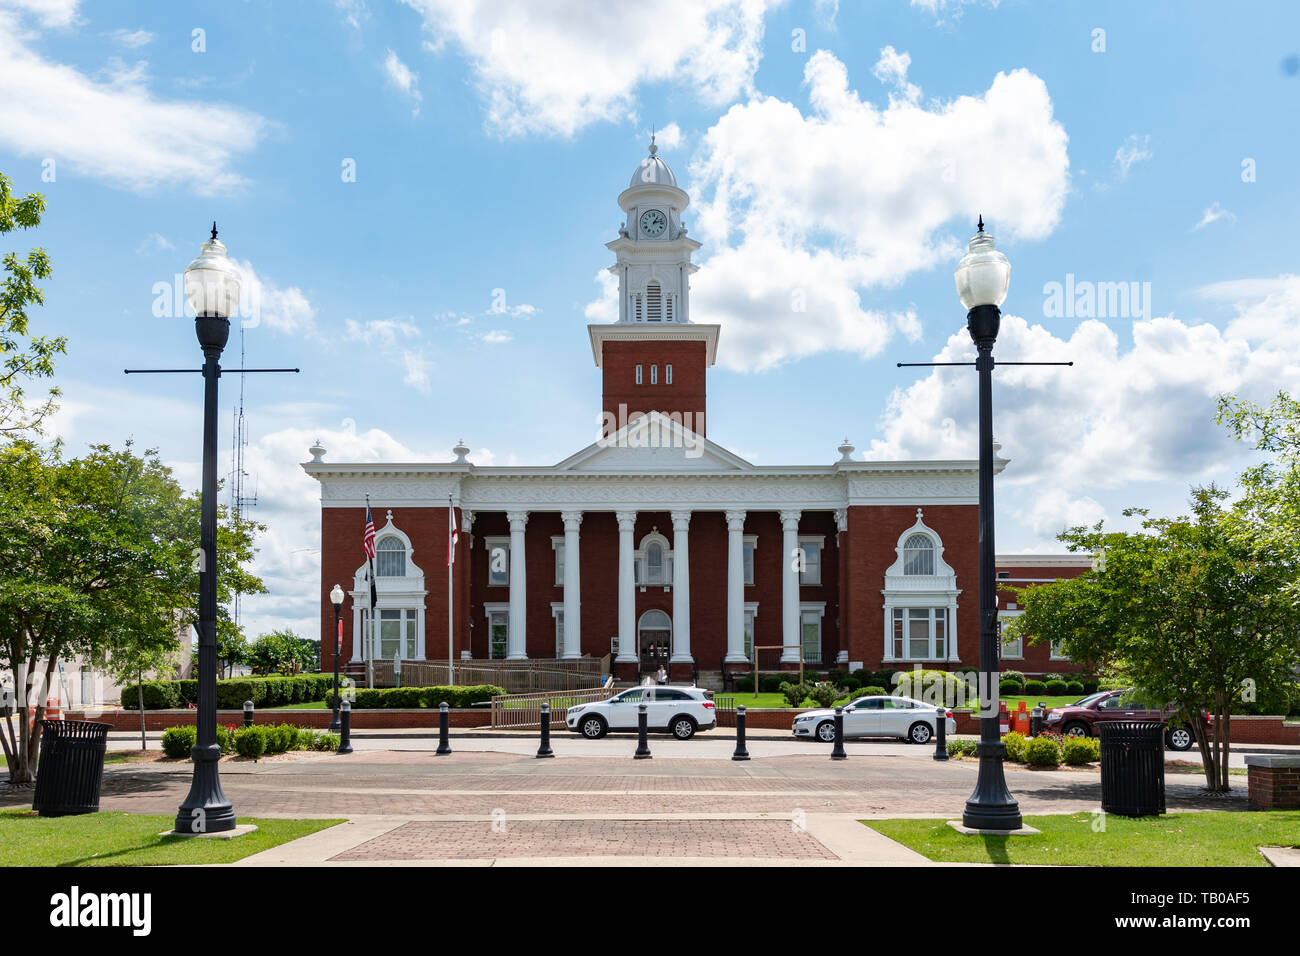 Opelika, Alabama/USA- May 10, 2019:  Historic Lee County Courthouse constructed in 1896 is a two-story, brick building of the Neoclassical architectur - Stock Image